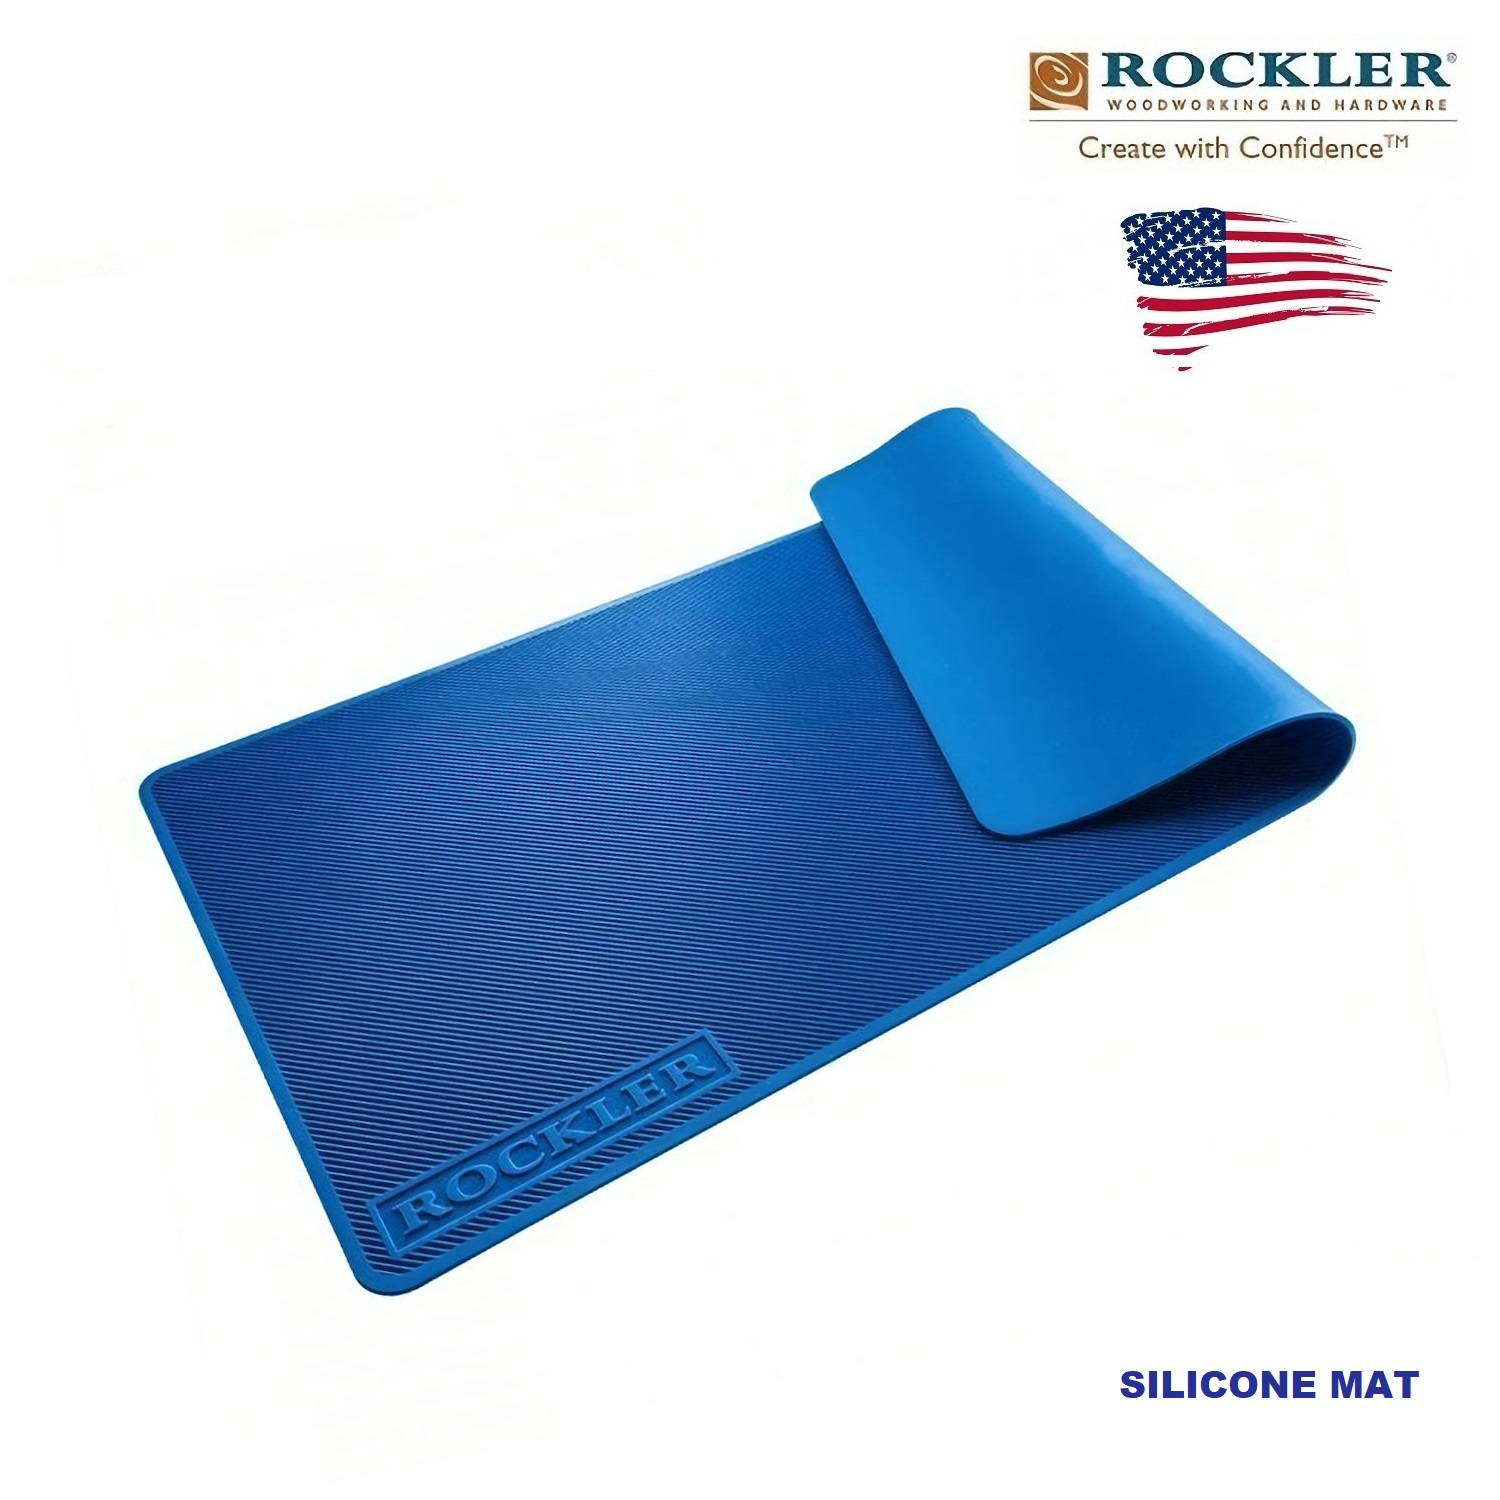 silicone mat Rockler